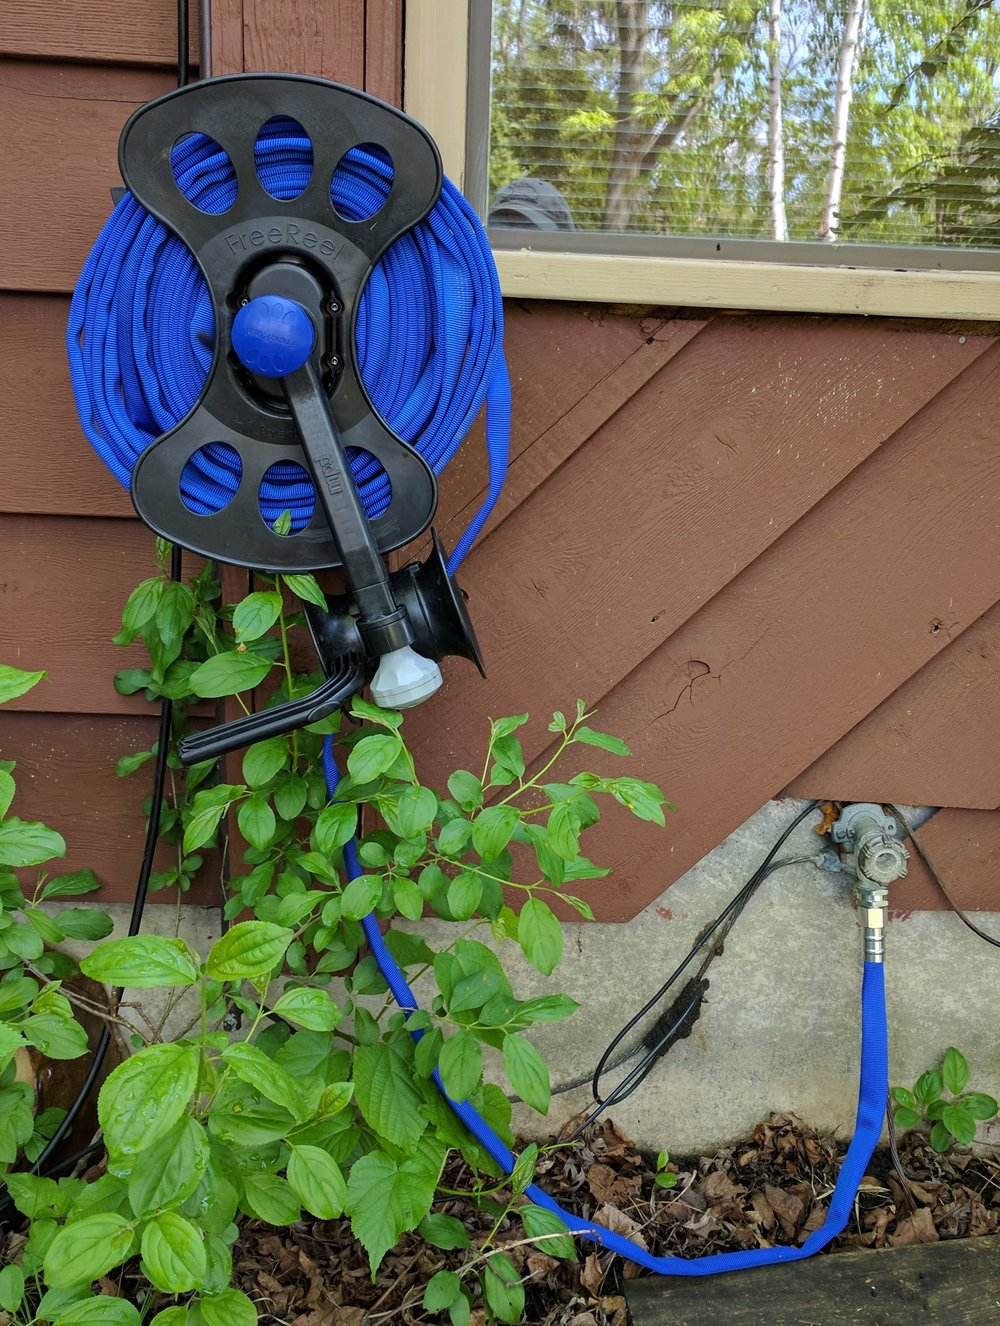 The FreeReel with a Flexible Water Hose